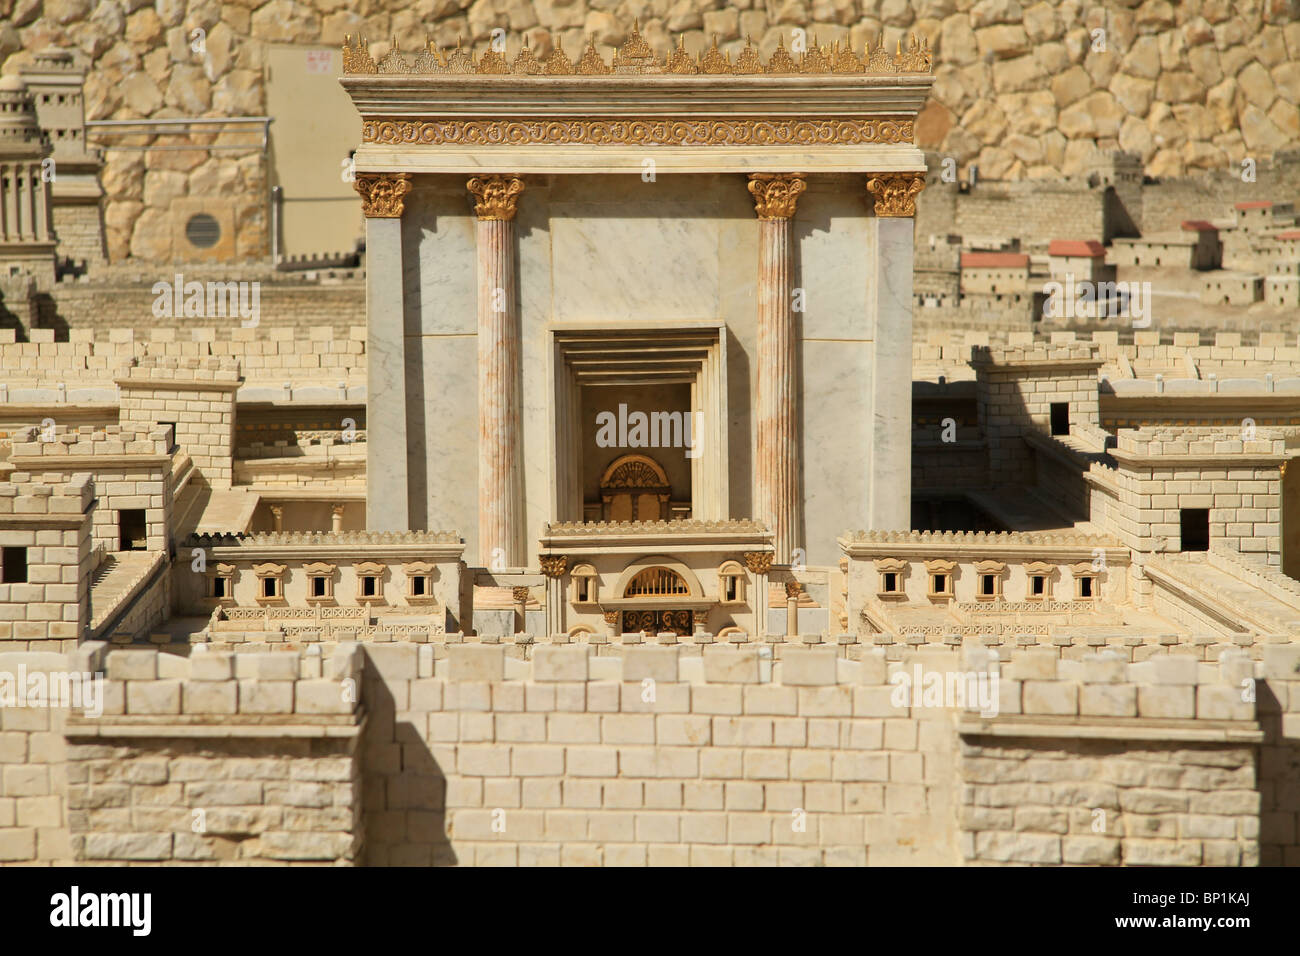 Israel, Jerusalem, the Model of Jerusalem in the Second Temple Period at the Israel Museum Stock Photo